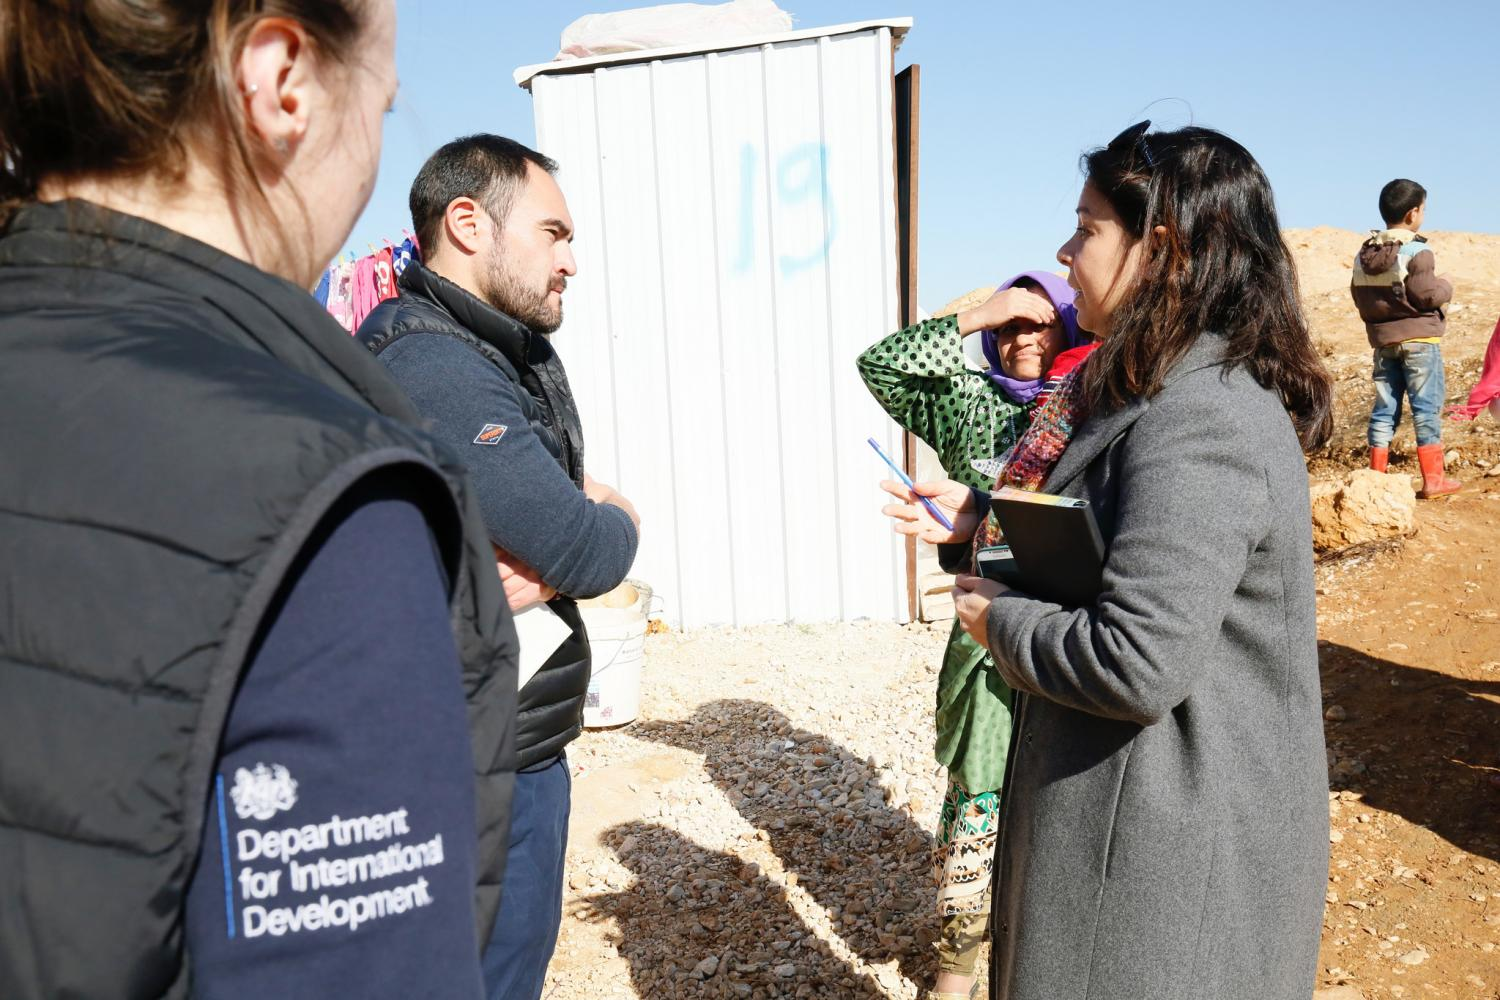 Humanitarian advisers from the U.K's Department for International Development talk to Syrian refugees in the Bekaa Valley, Lebanon, February 2017.